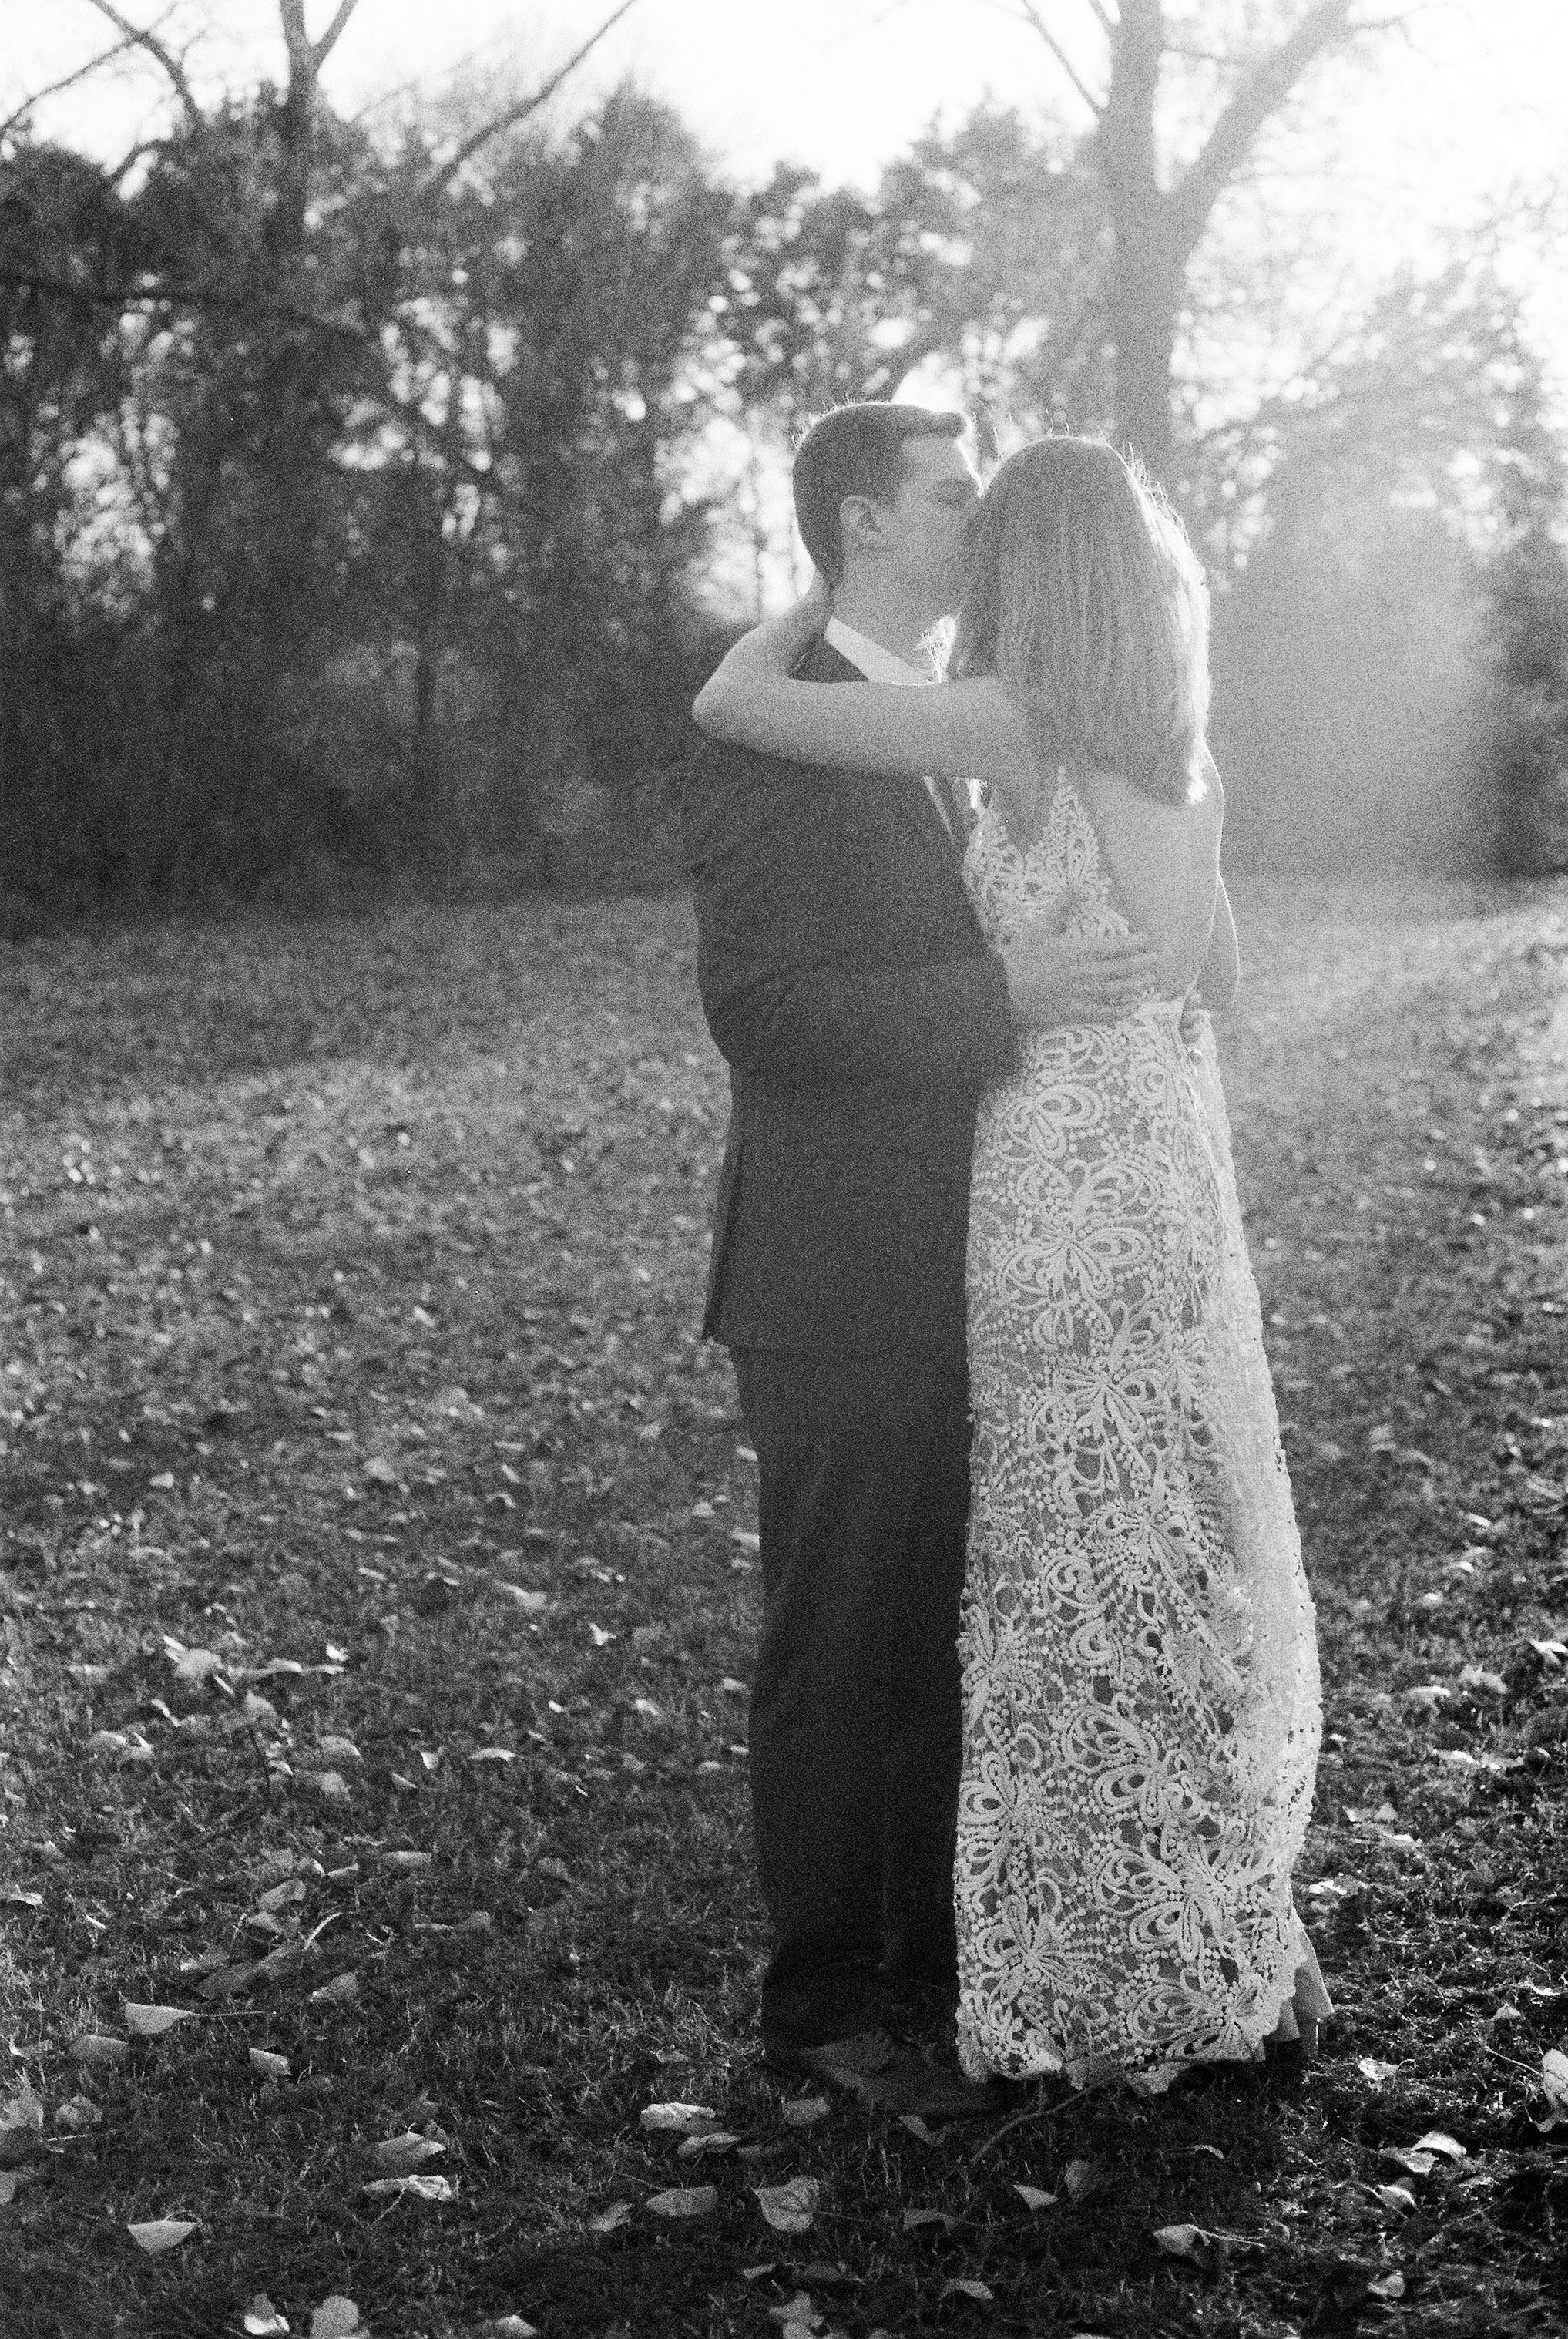 Wedding Bridals on Black and White 35mm Film